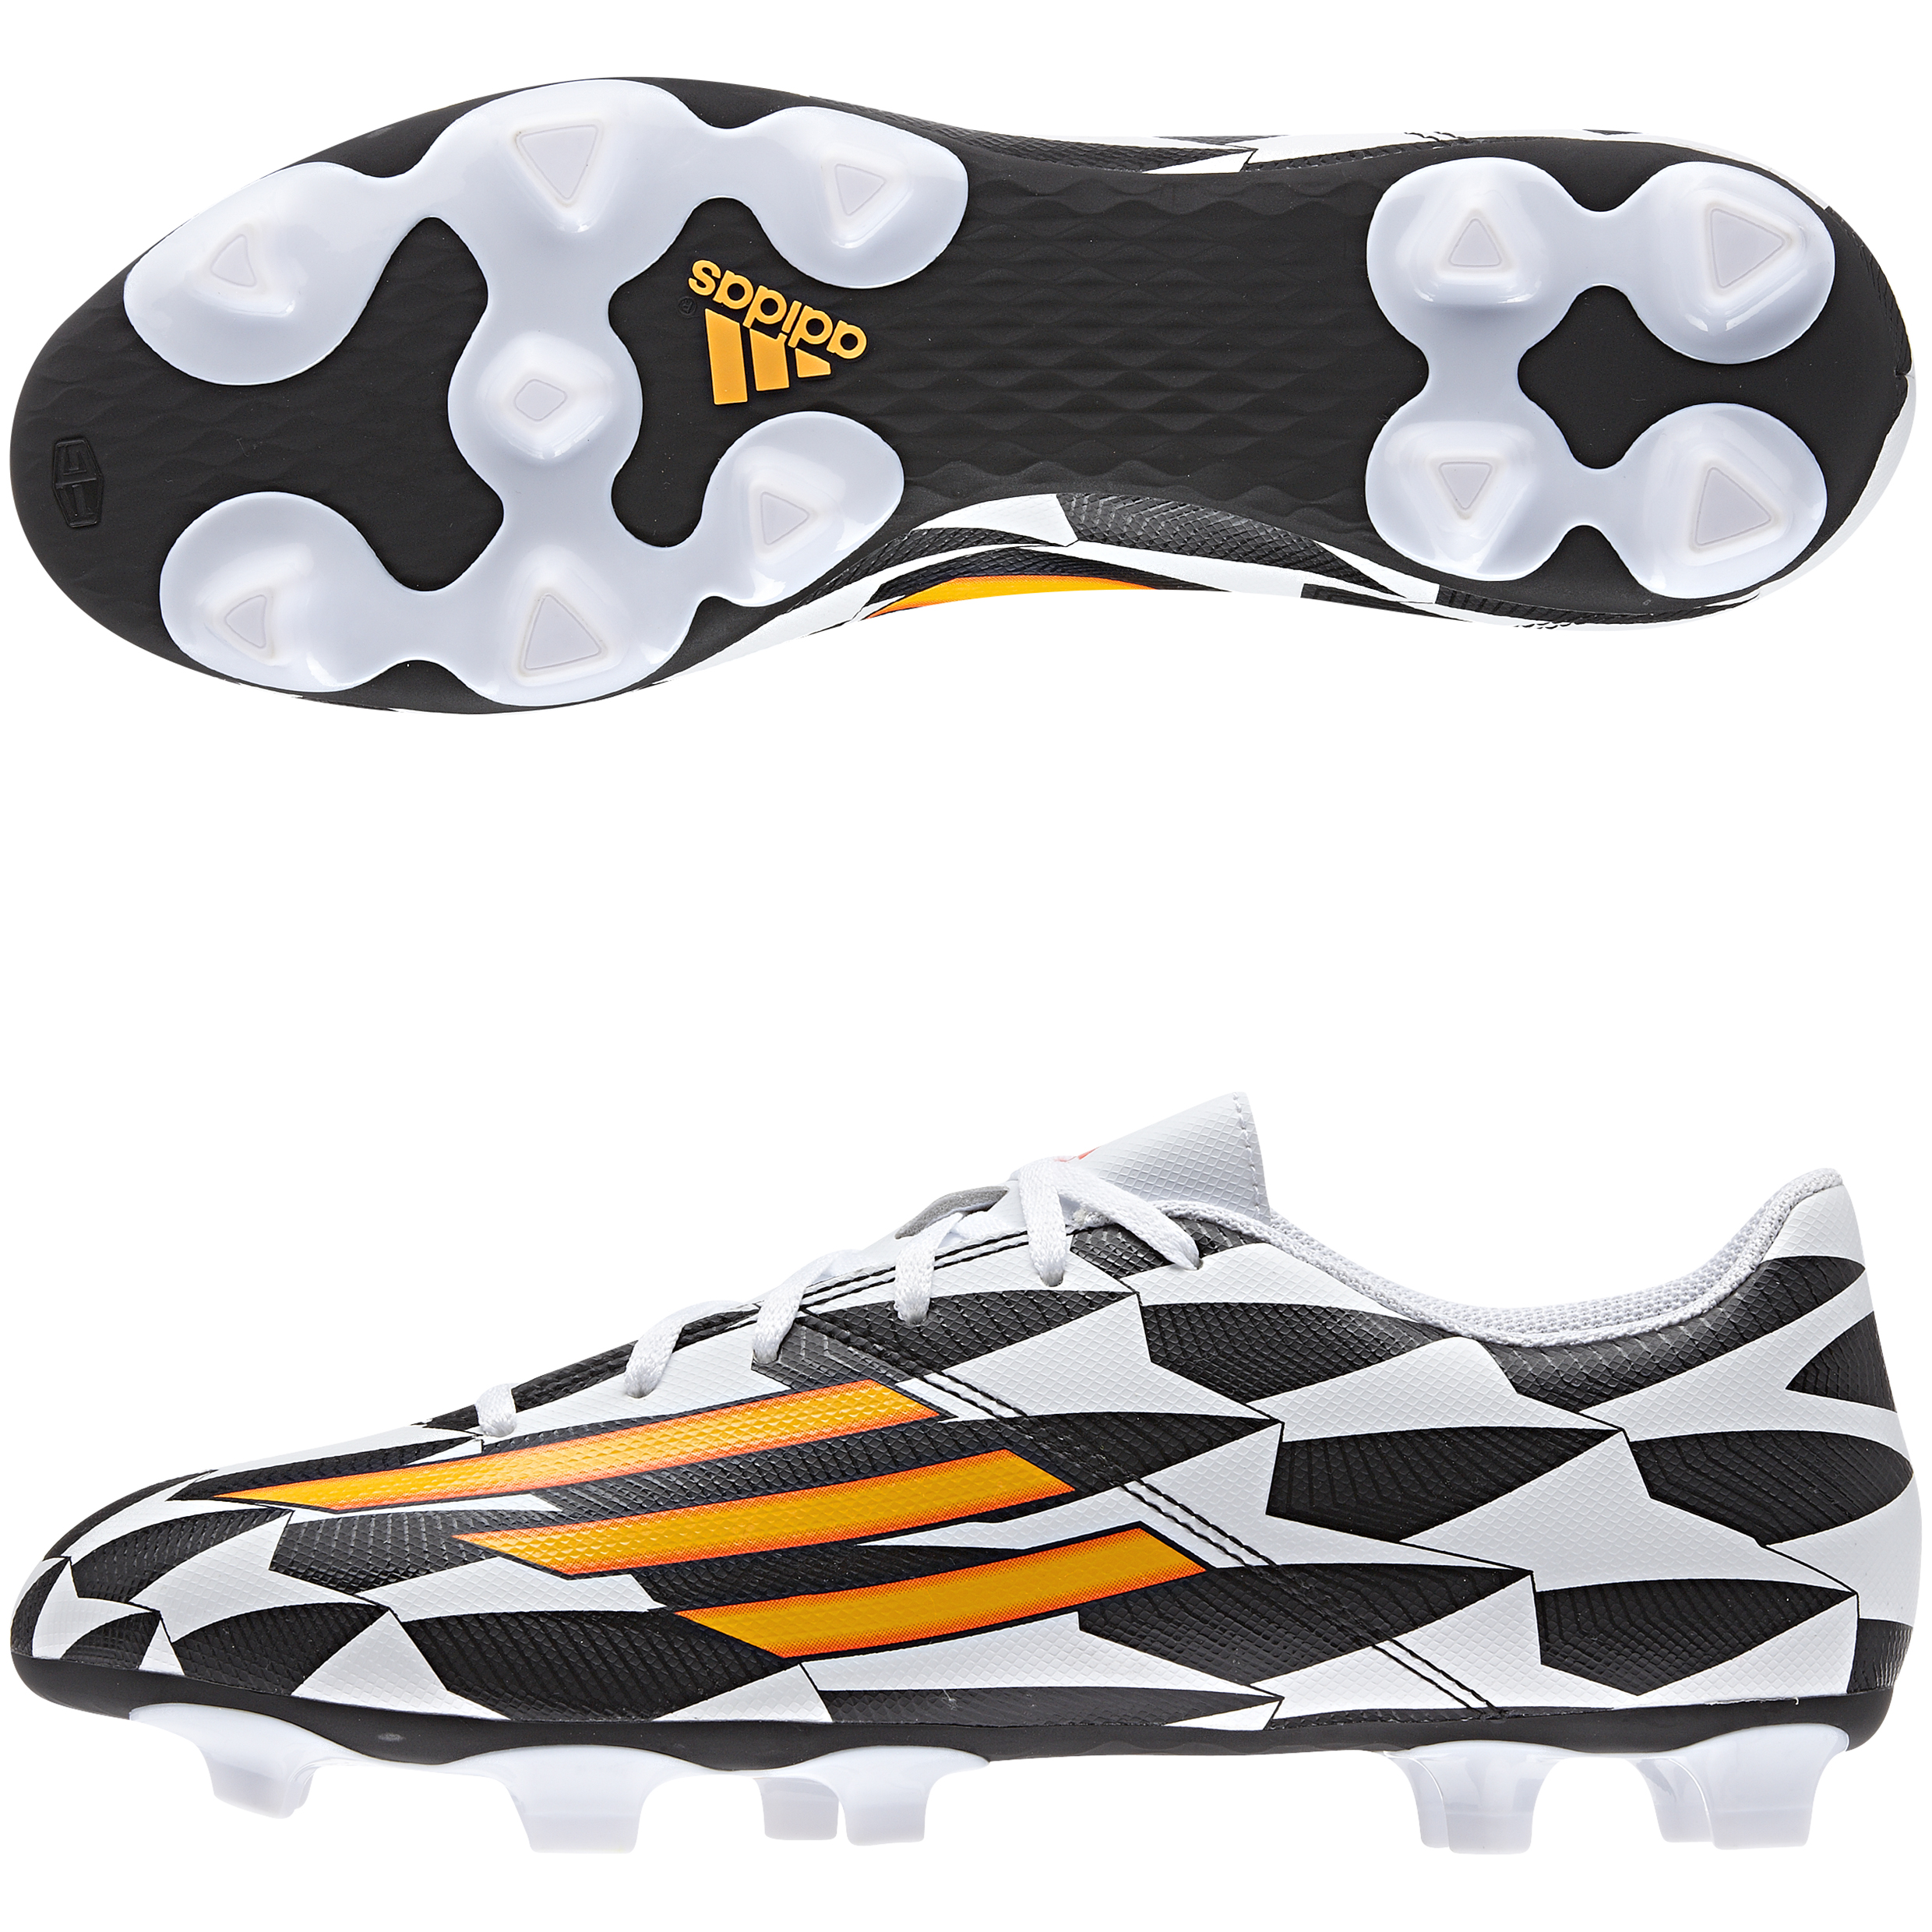 Adidas F5 World Cup 2014 Firm Ground Football Boots White